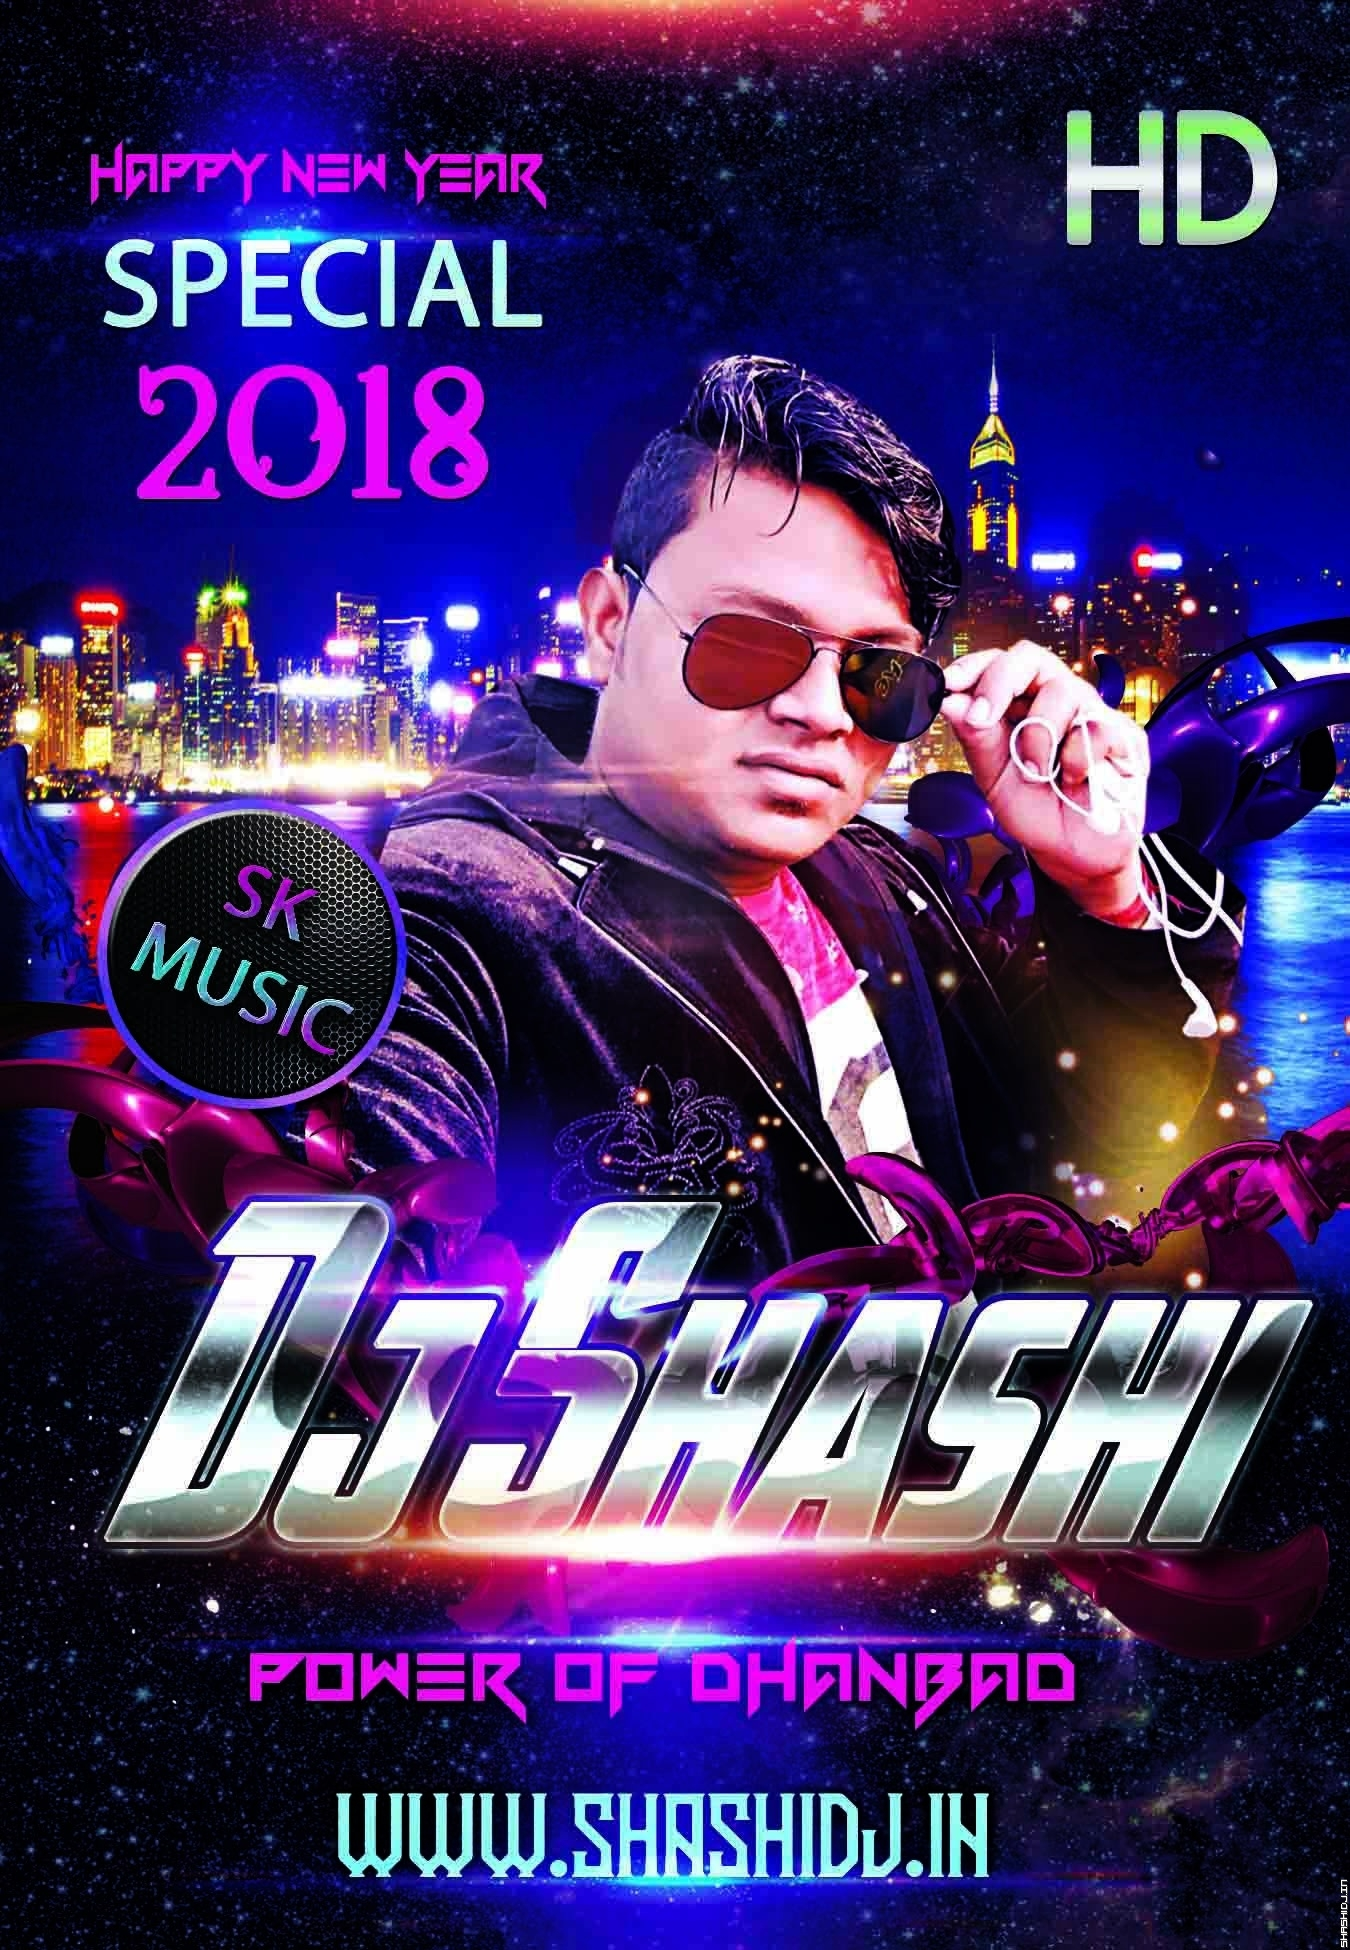 Marbo+Re+Sugwa+Dhanush+Se+Alter+Dholki+Hard+Mix.mp3